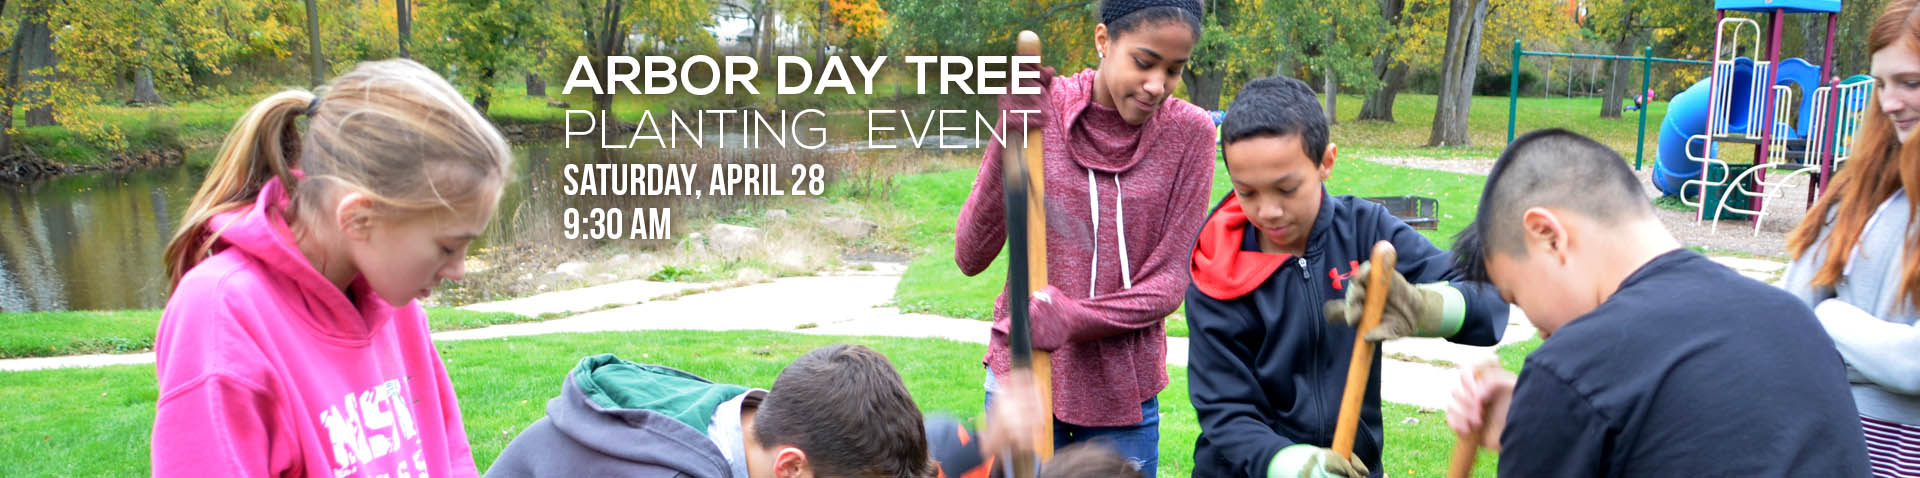 Arbor Day homepage banner